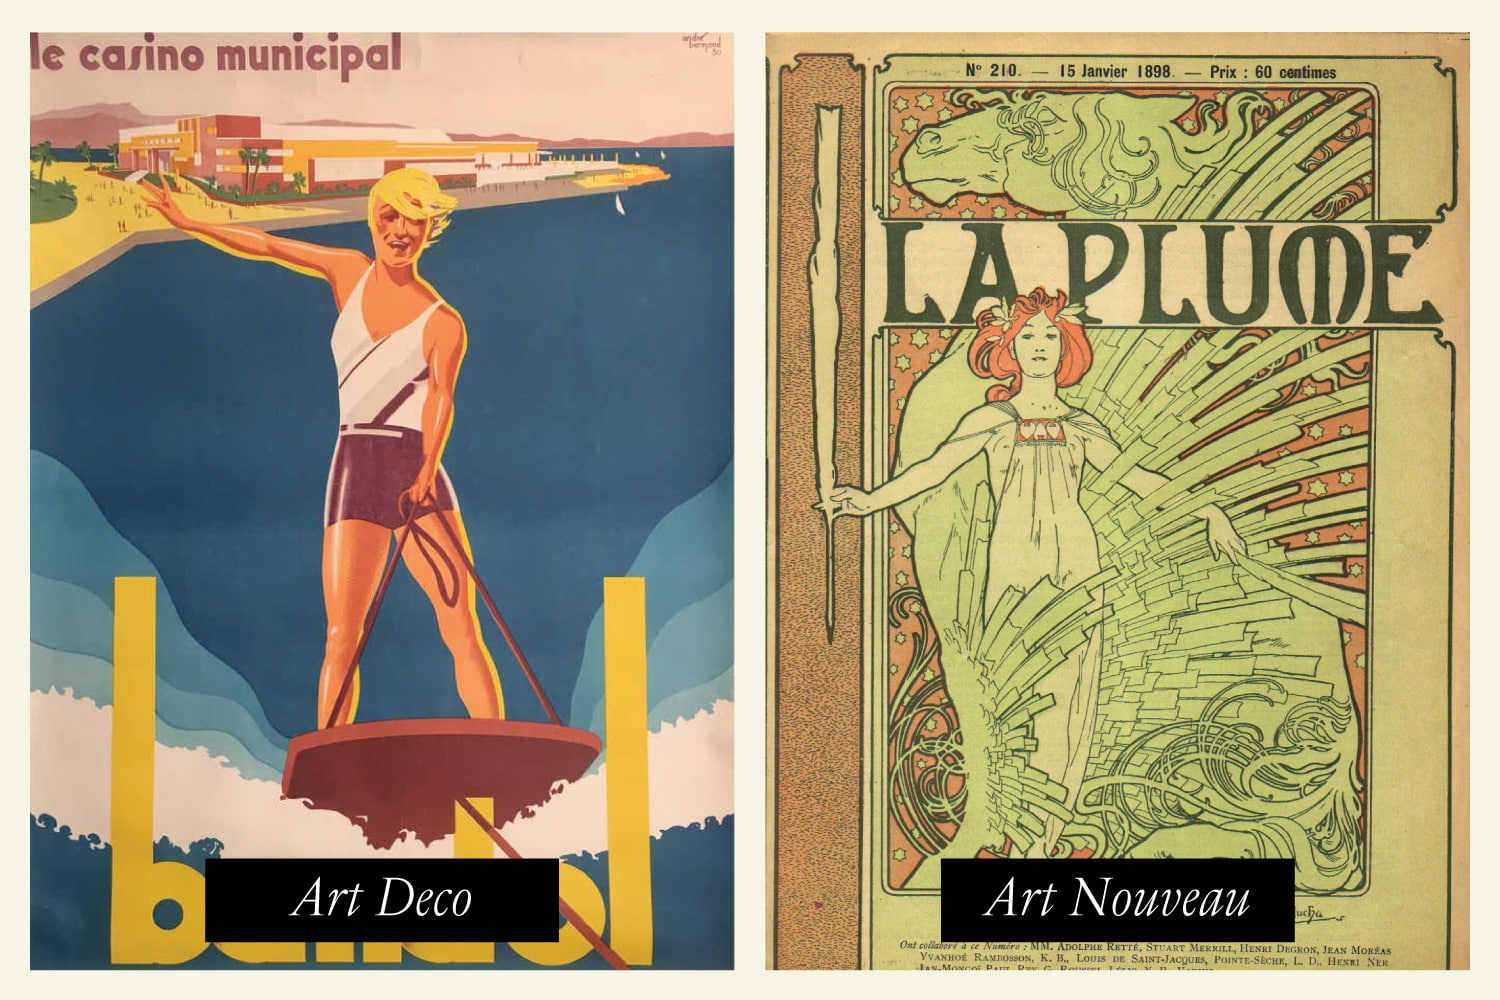 art deco poster and art nouveau poster side by side